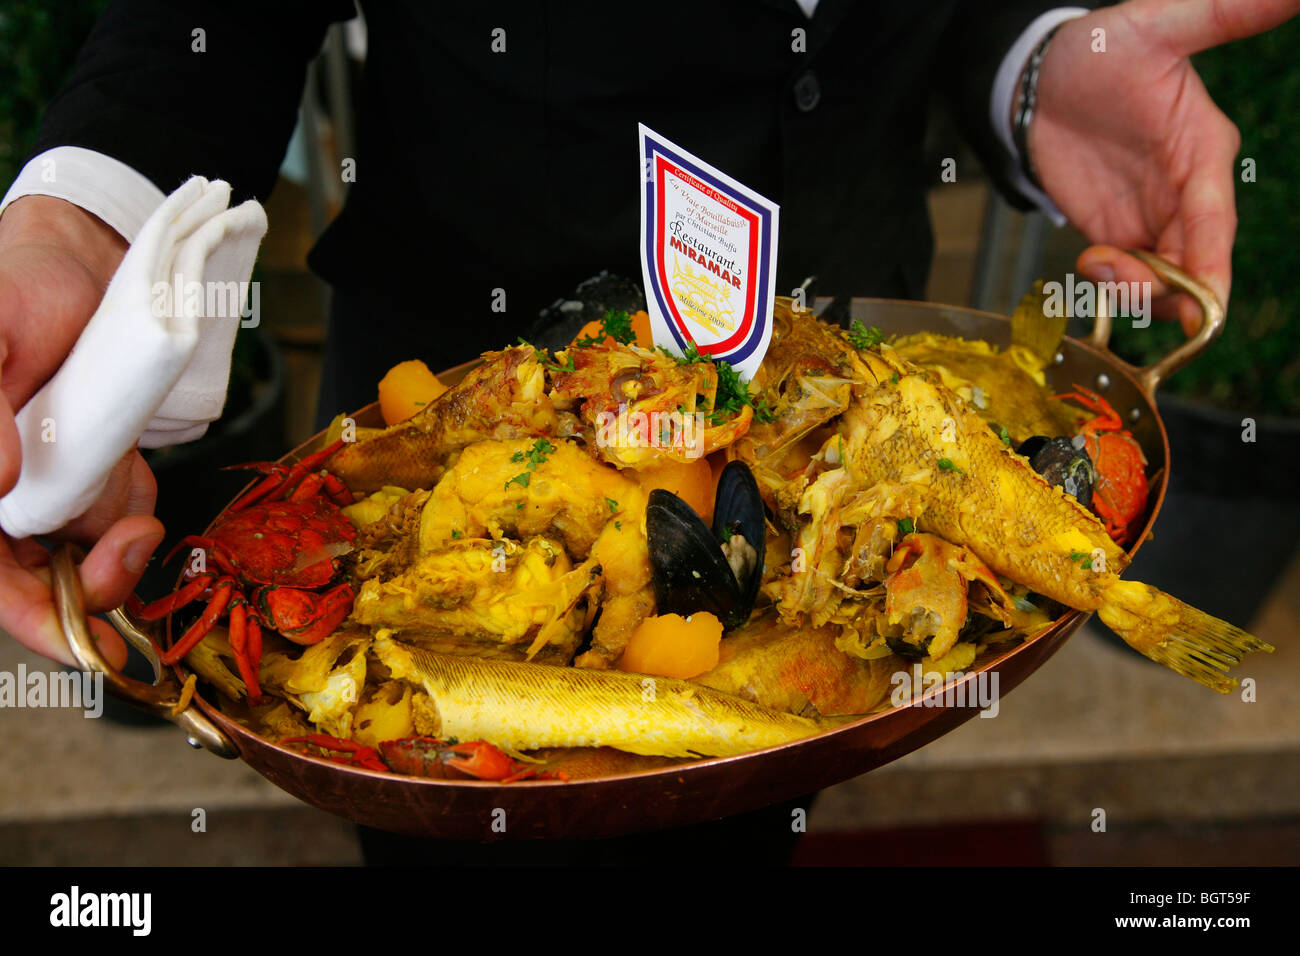 Bouillabaisse dish at restaurant miramar in the le vieux port area stock photo royalty free - Bouillabaisse marseille vieux port ...